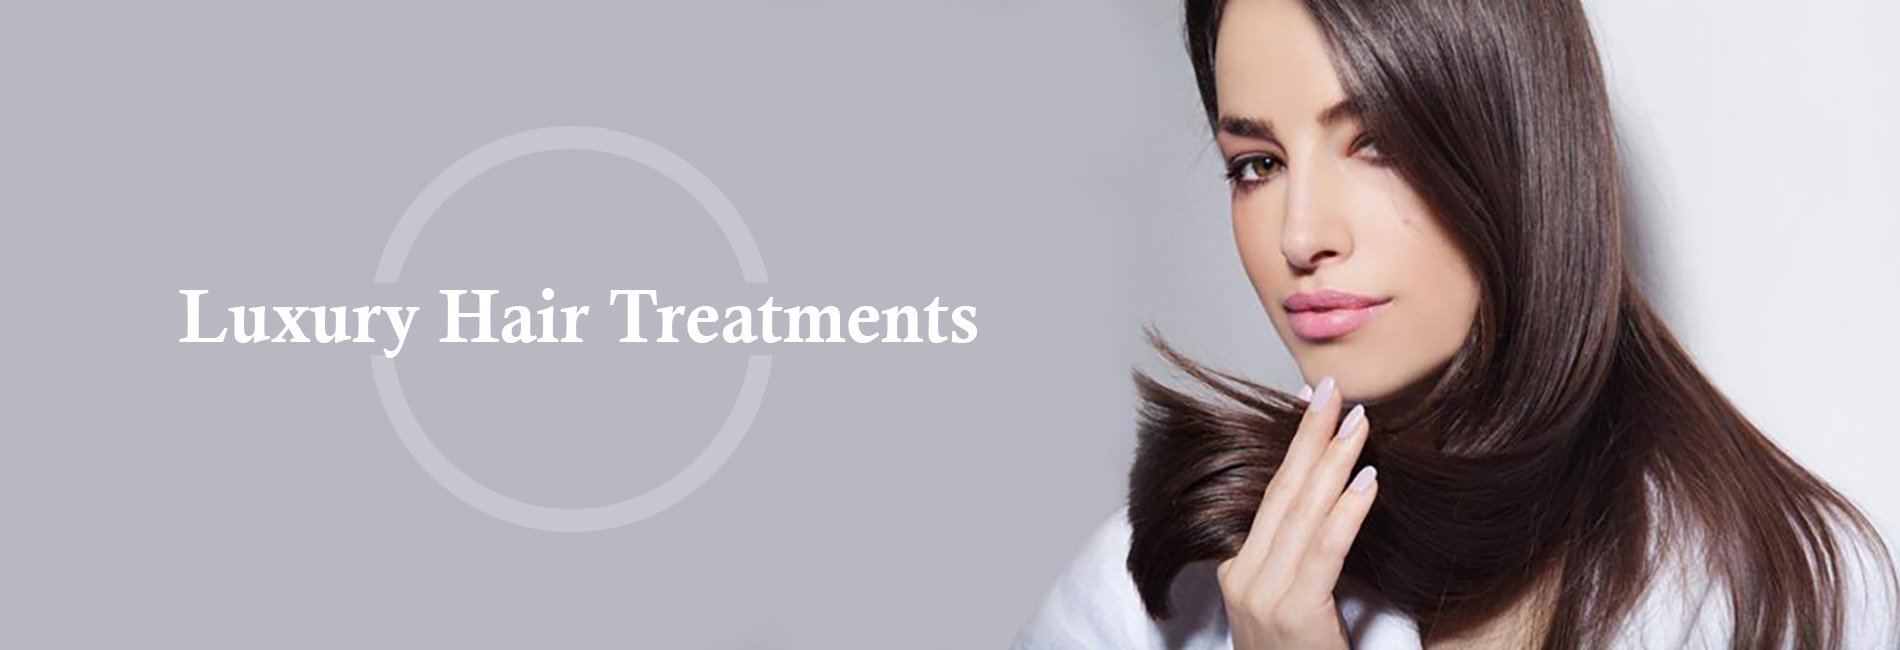 Luxury Hair Treatments 2